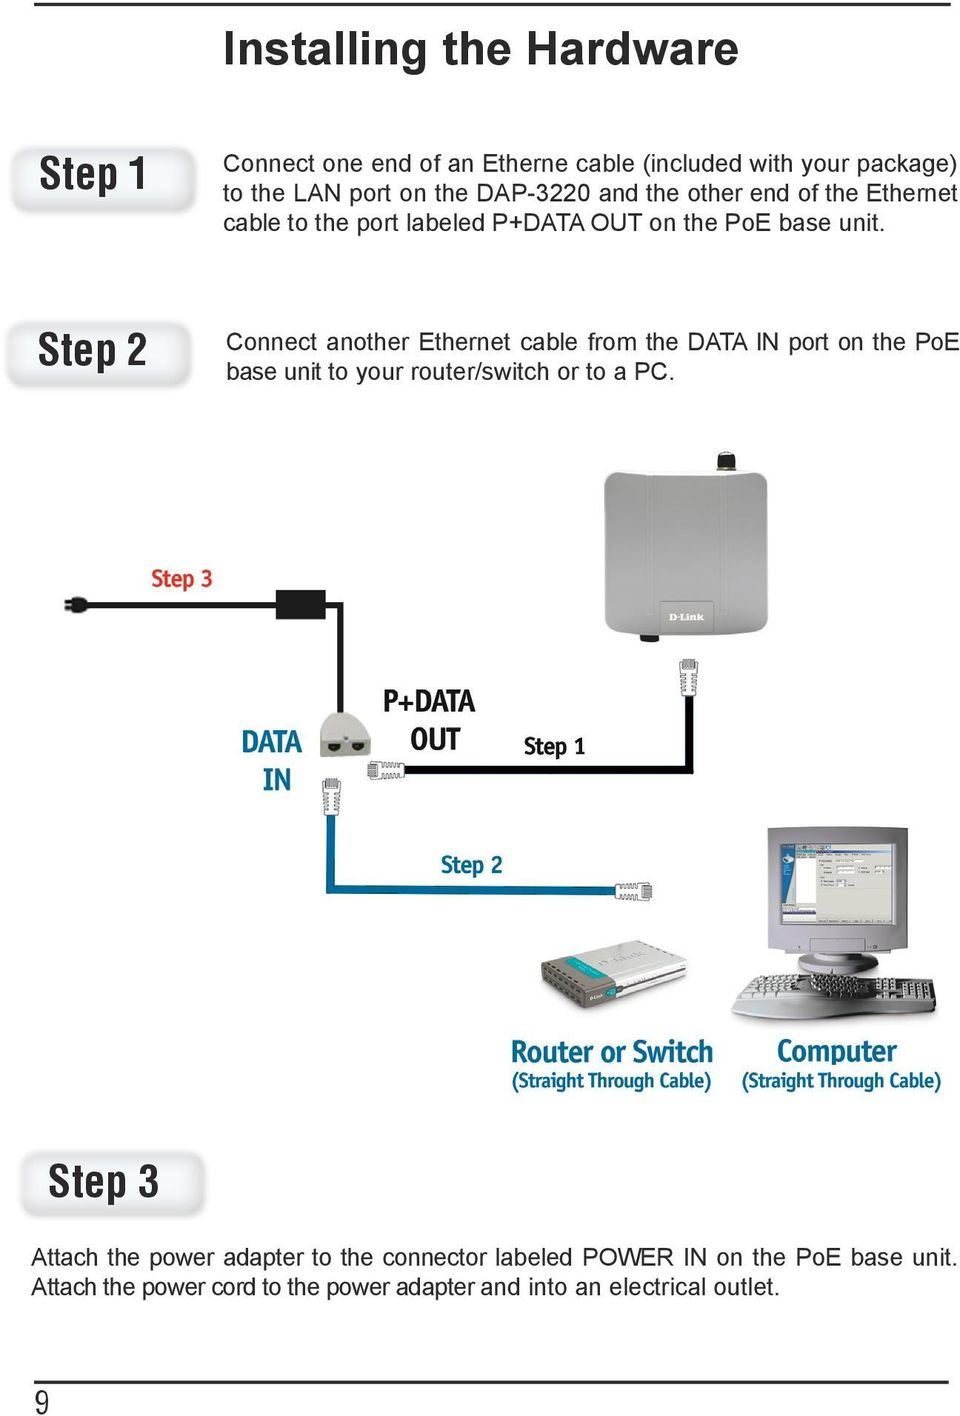 Step 2 Connect another Ethernet cable from the DATA IN port on the PoE base unit to your router/switch or to a PC.